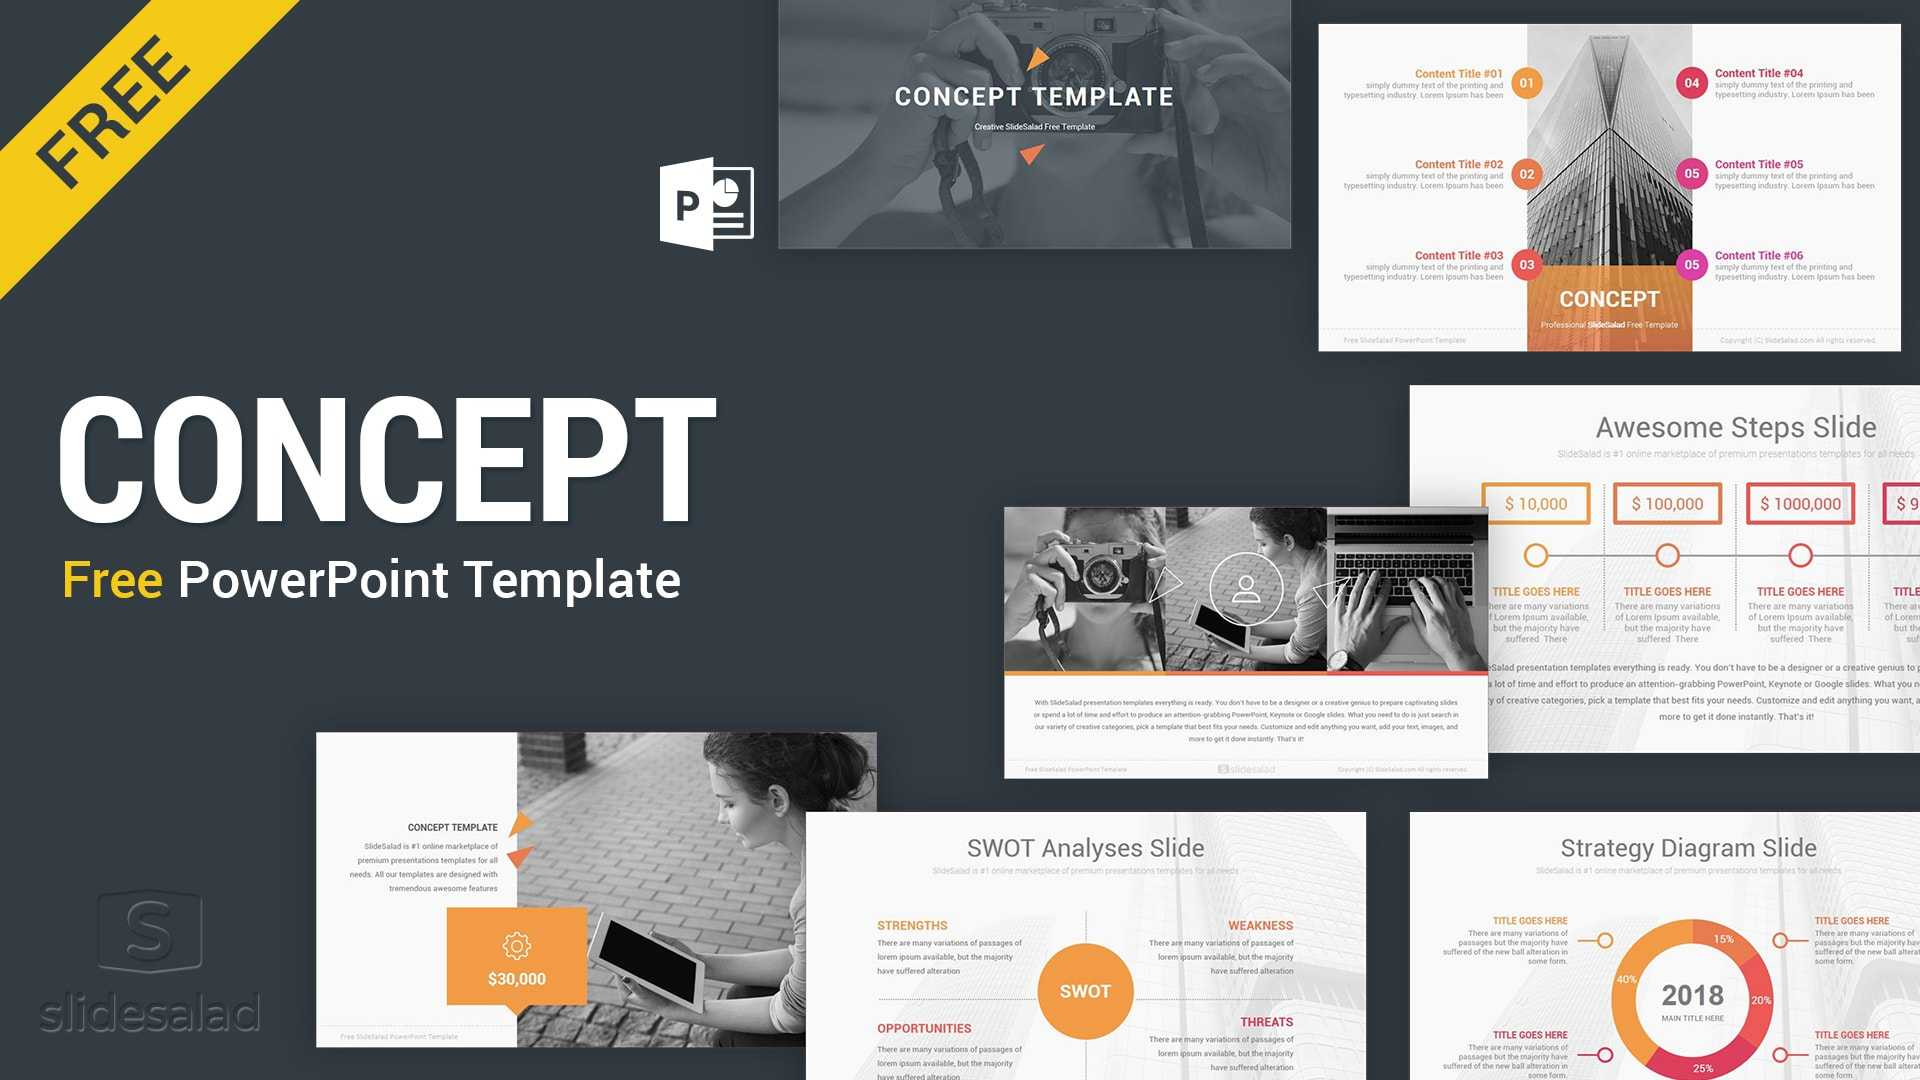 Concept Free Powerpoint Presentation Template - Free Regarding Free Download Powerpoint Templates For Business Presentation